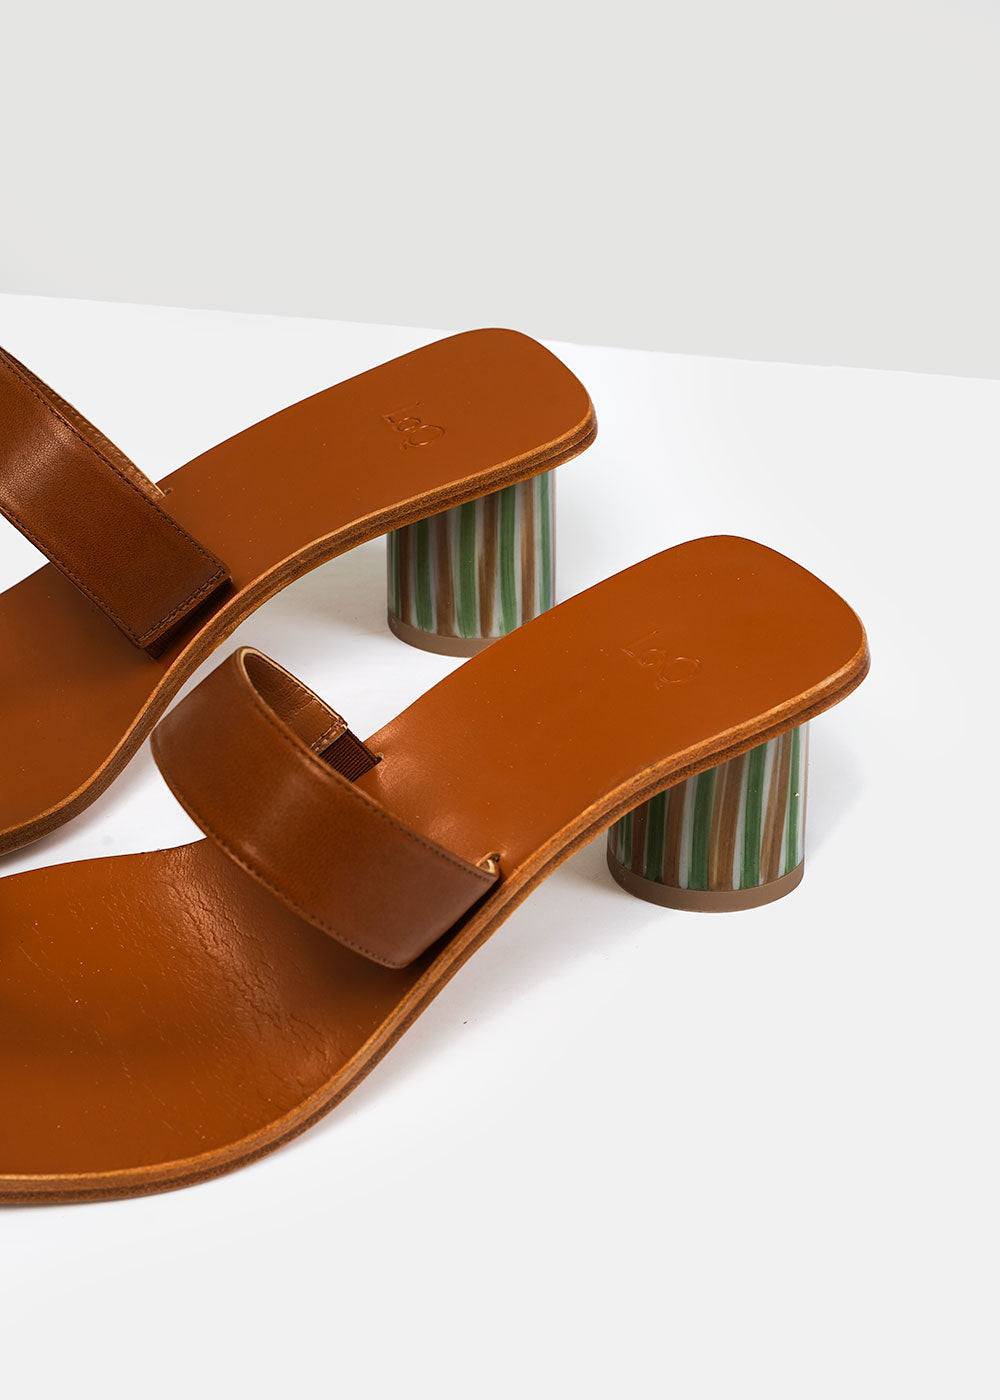 LoQ Flan Tere Sandals — Shop sustainable fashion and slow fashion at New Classics Studios